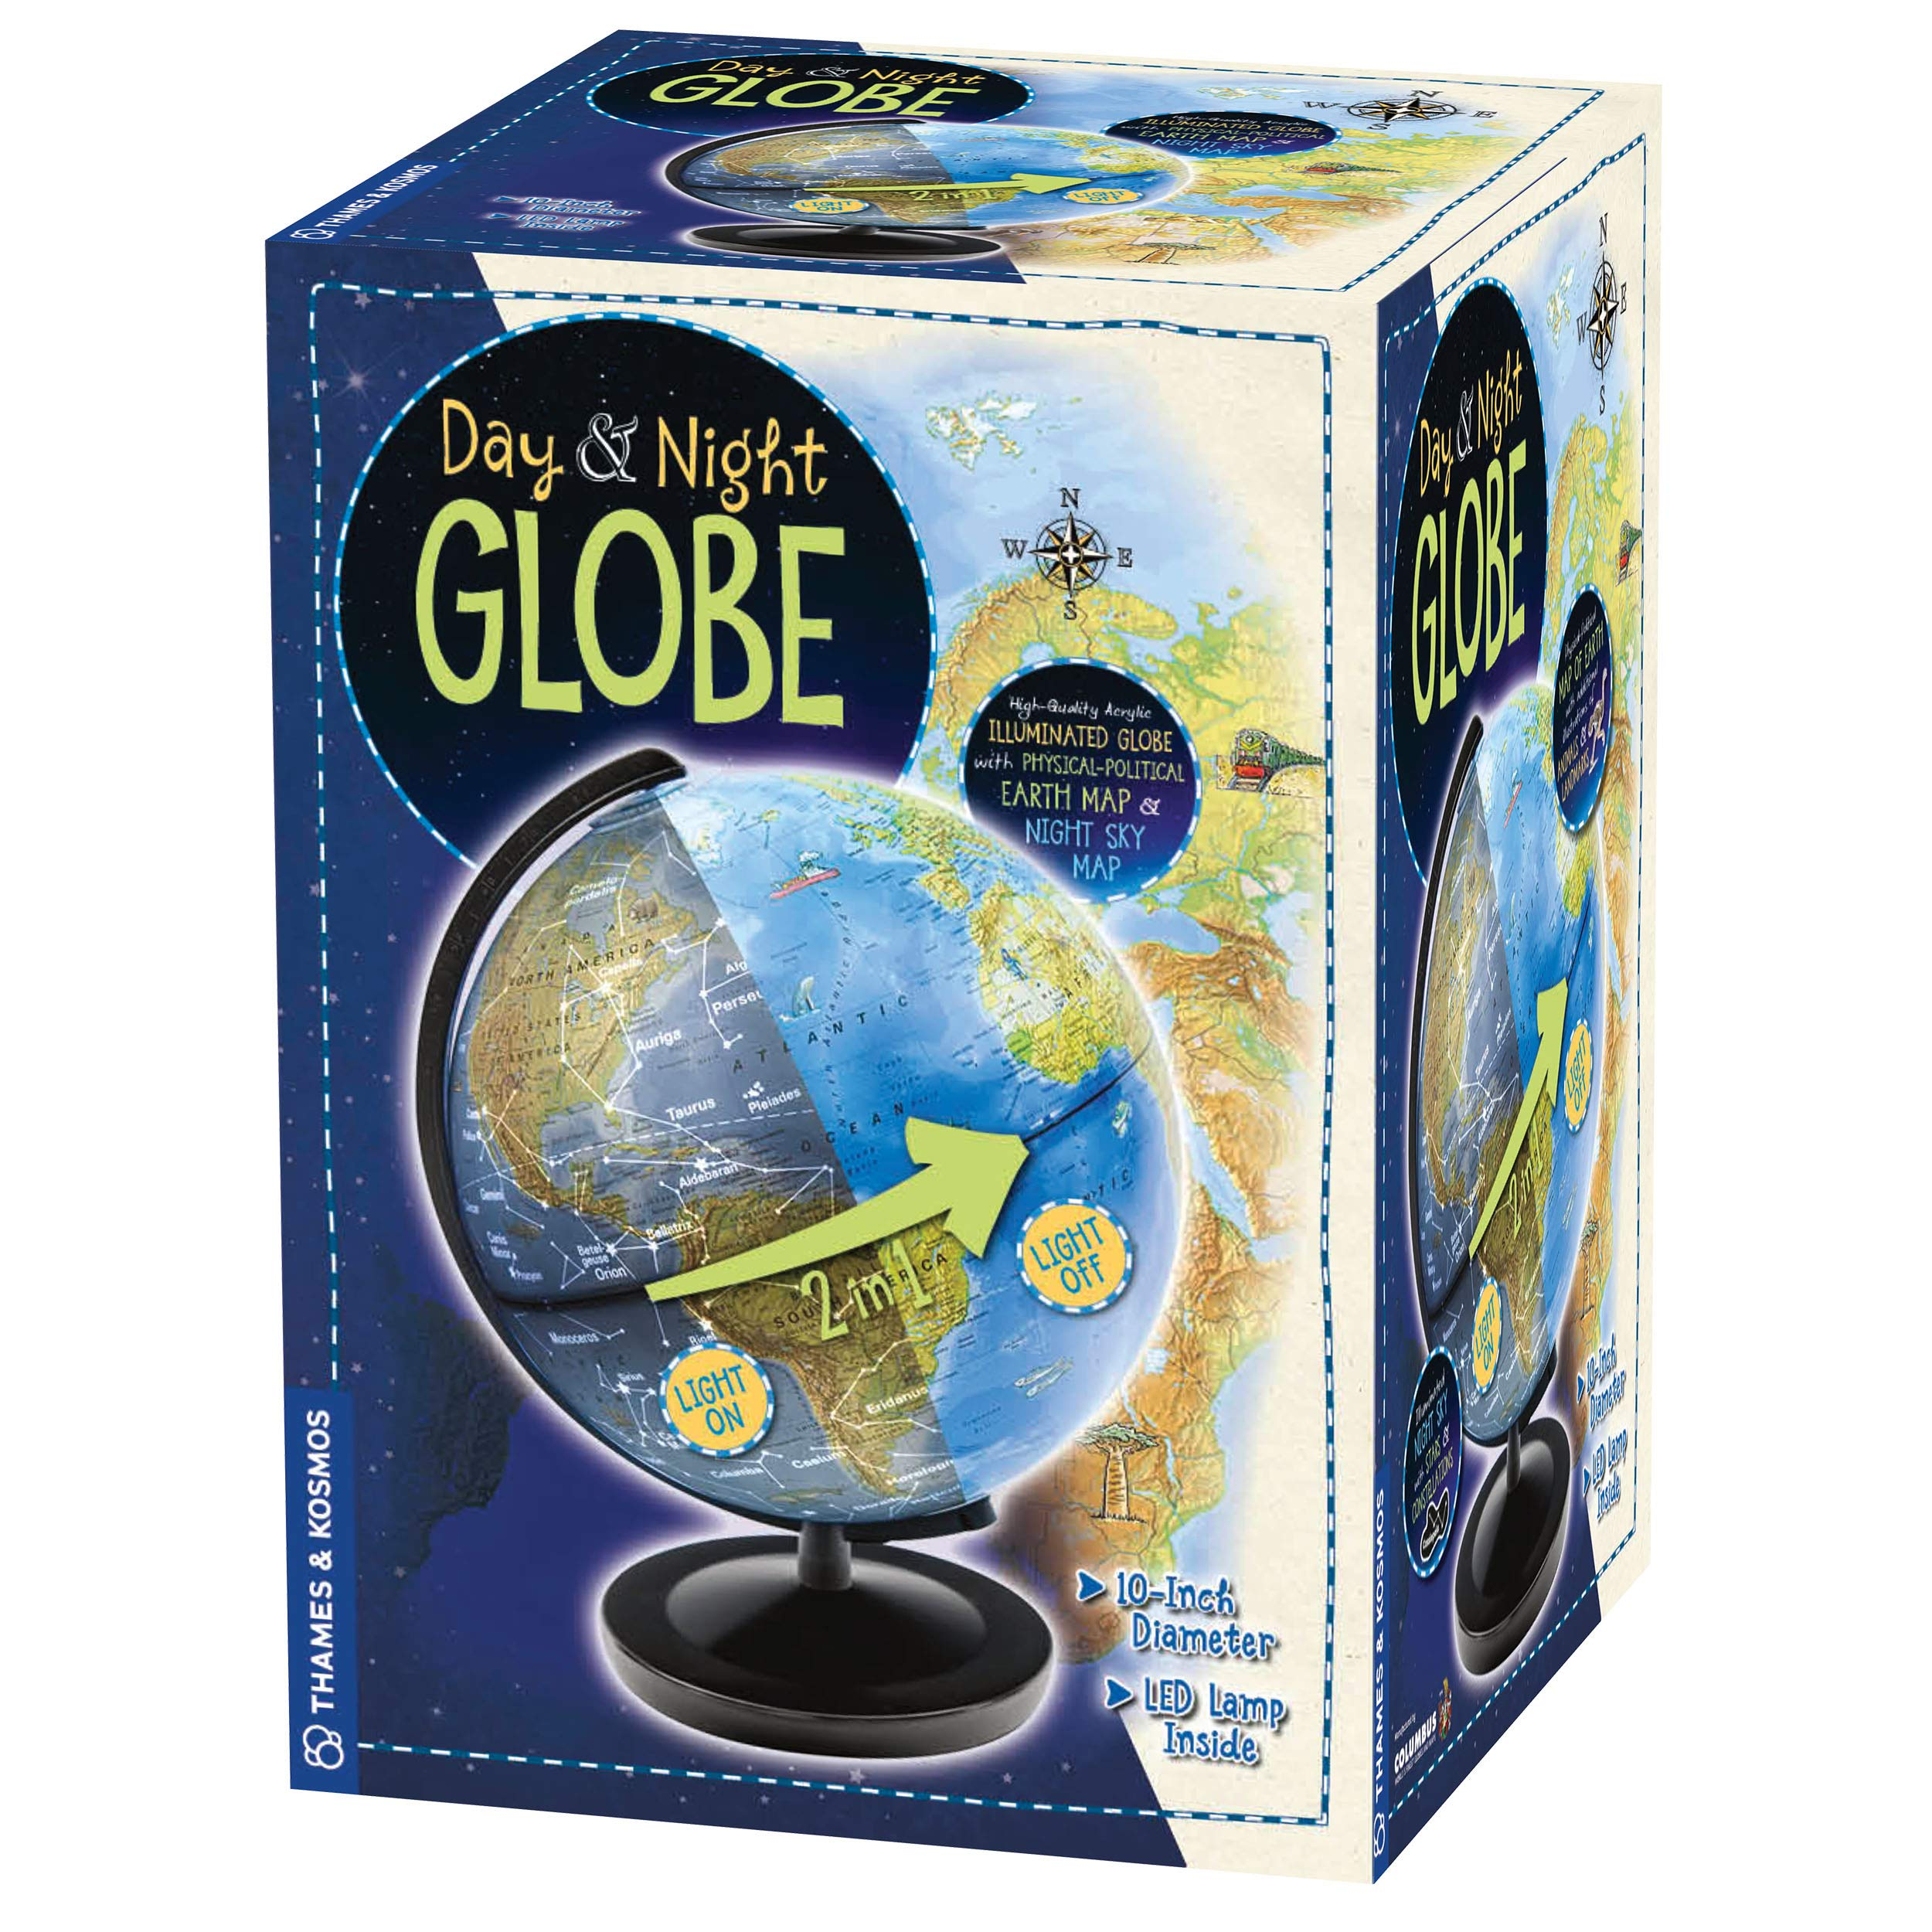 Thames & Kosmos Day & Night Globe - Handcrafted, Acrylic - Made in Germany by Columbus Globes - 10 inch, Illuminated LED Light-up with Night Sky Constellation Map by Thames & Kosmos